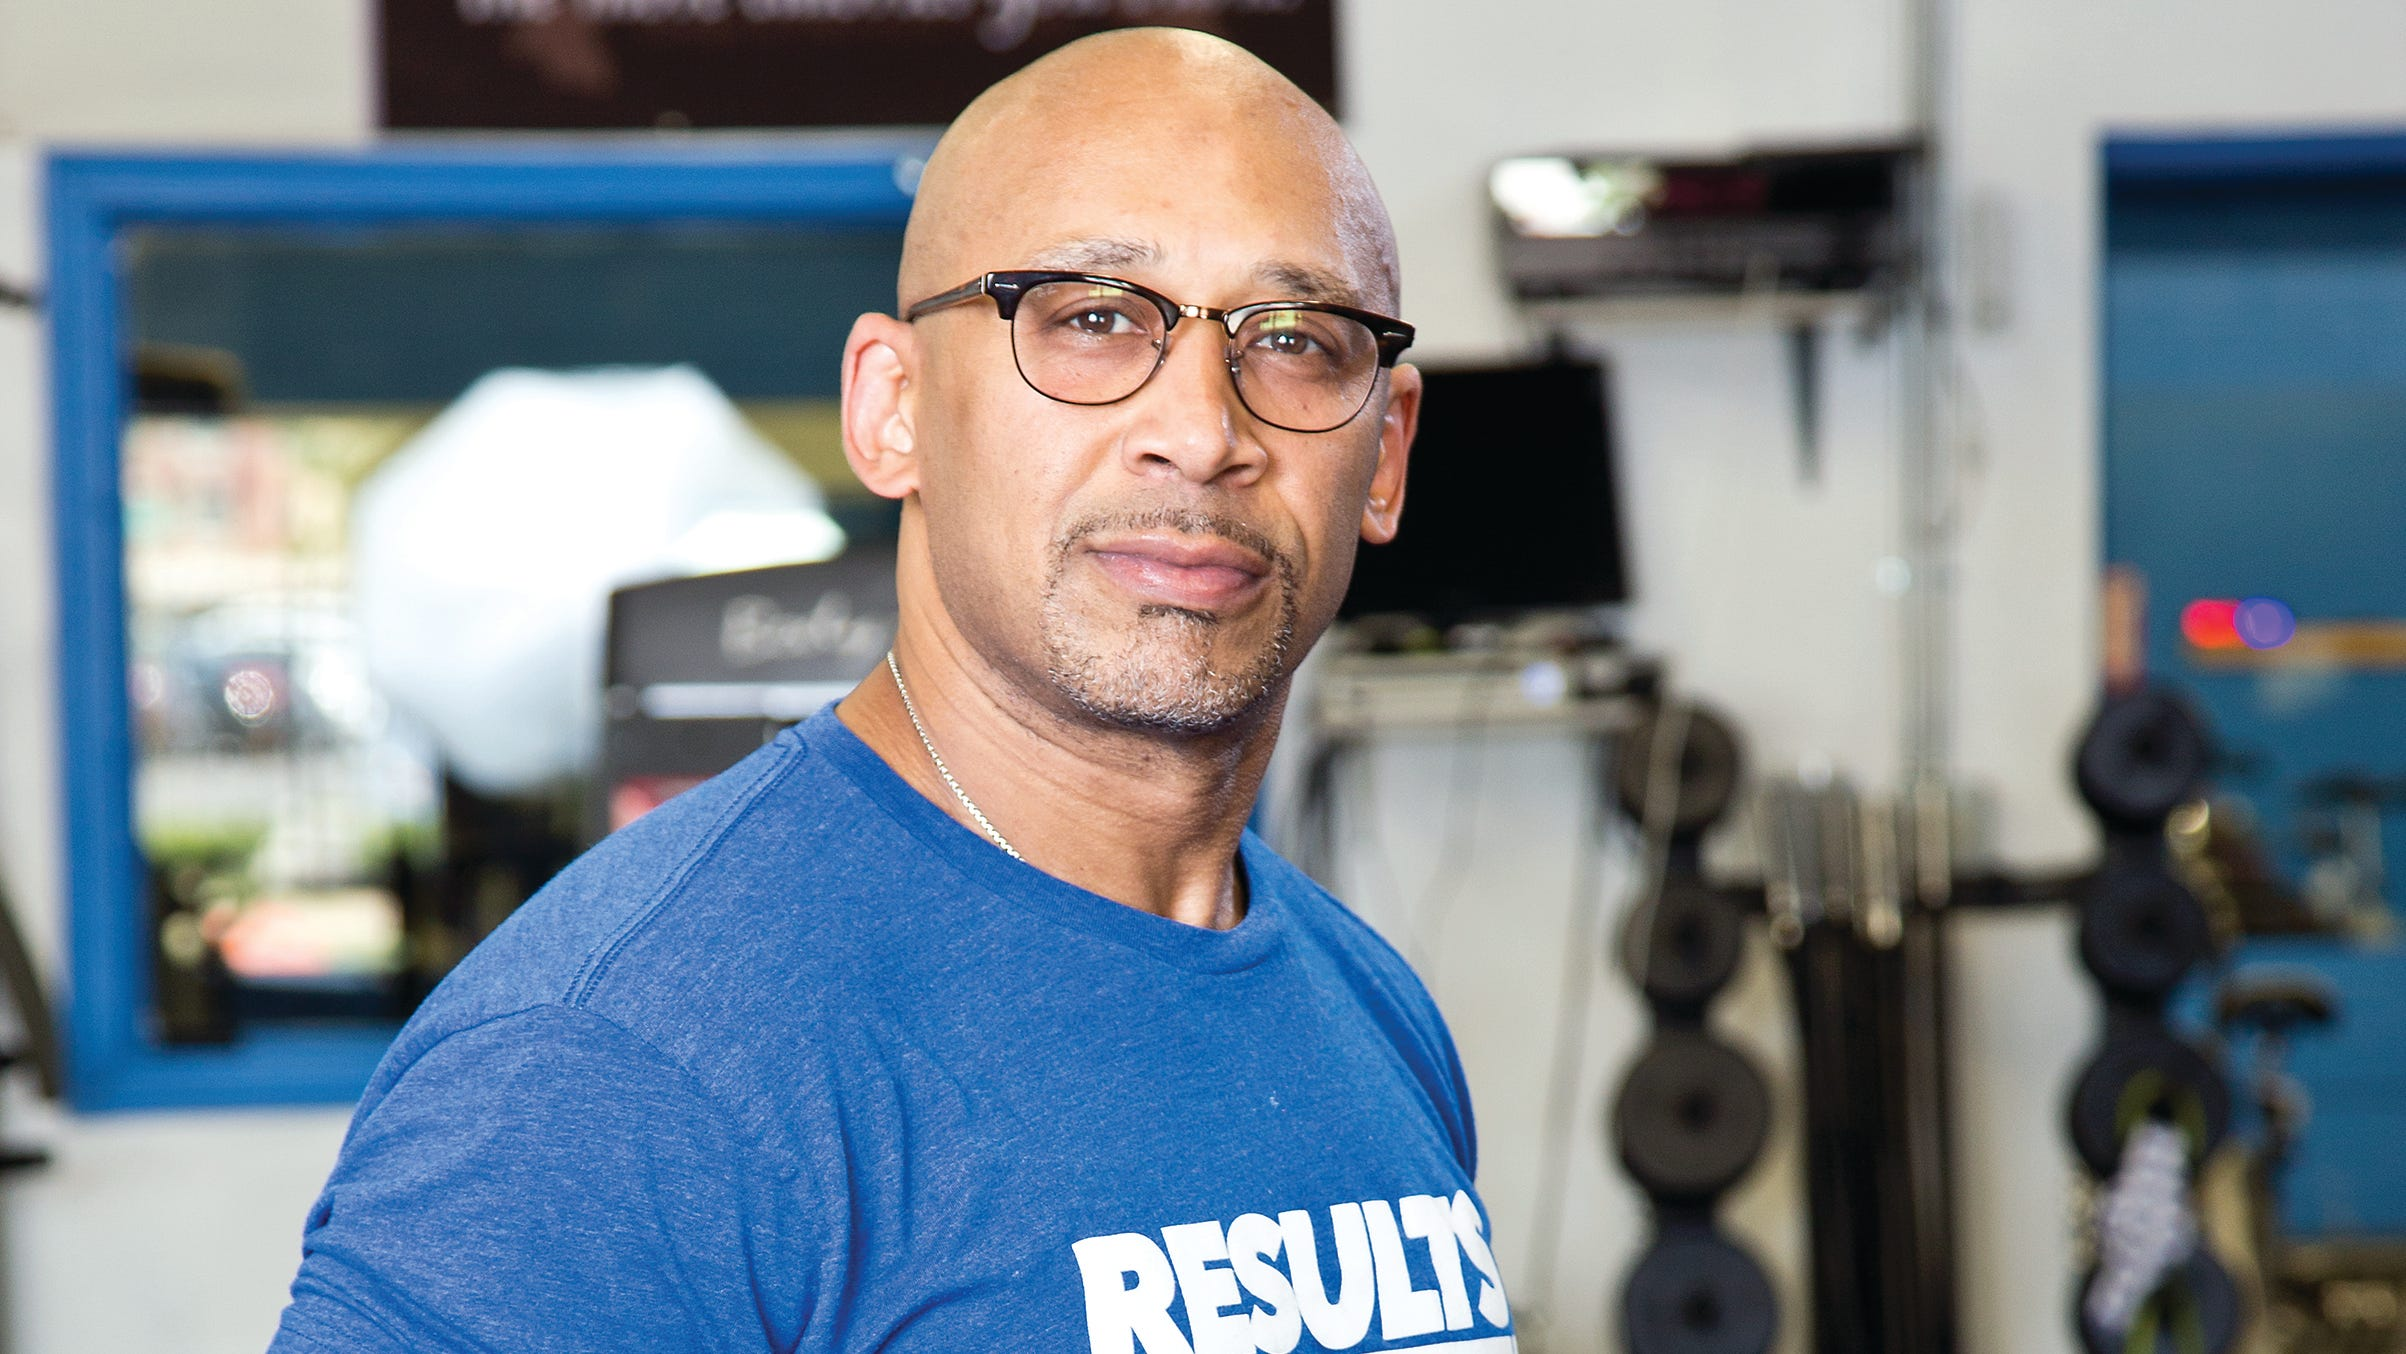 James Gullatte founded B.O.S.S. Fitness in 1999 while still in prison.